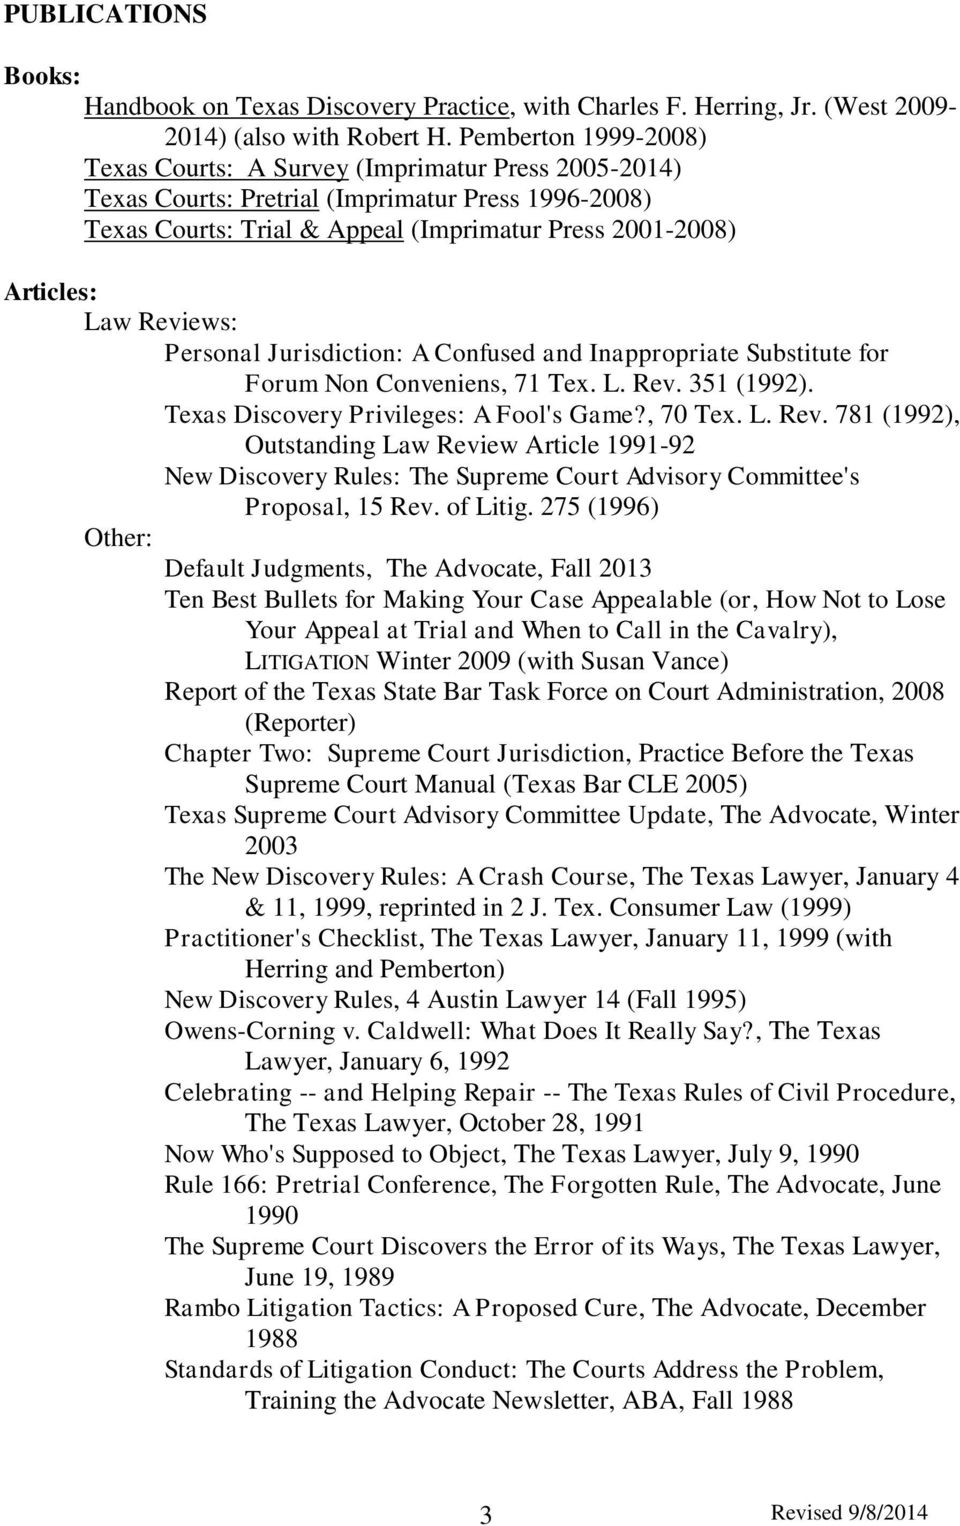 Reviews: Personal Jurisdiction: A Confused and Inappropriate Substitute for Forum Non Conveniens, 71 Tex. L. Rev.